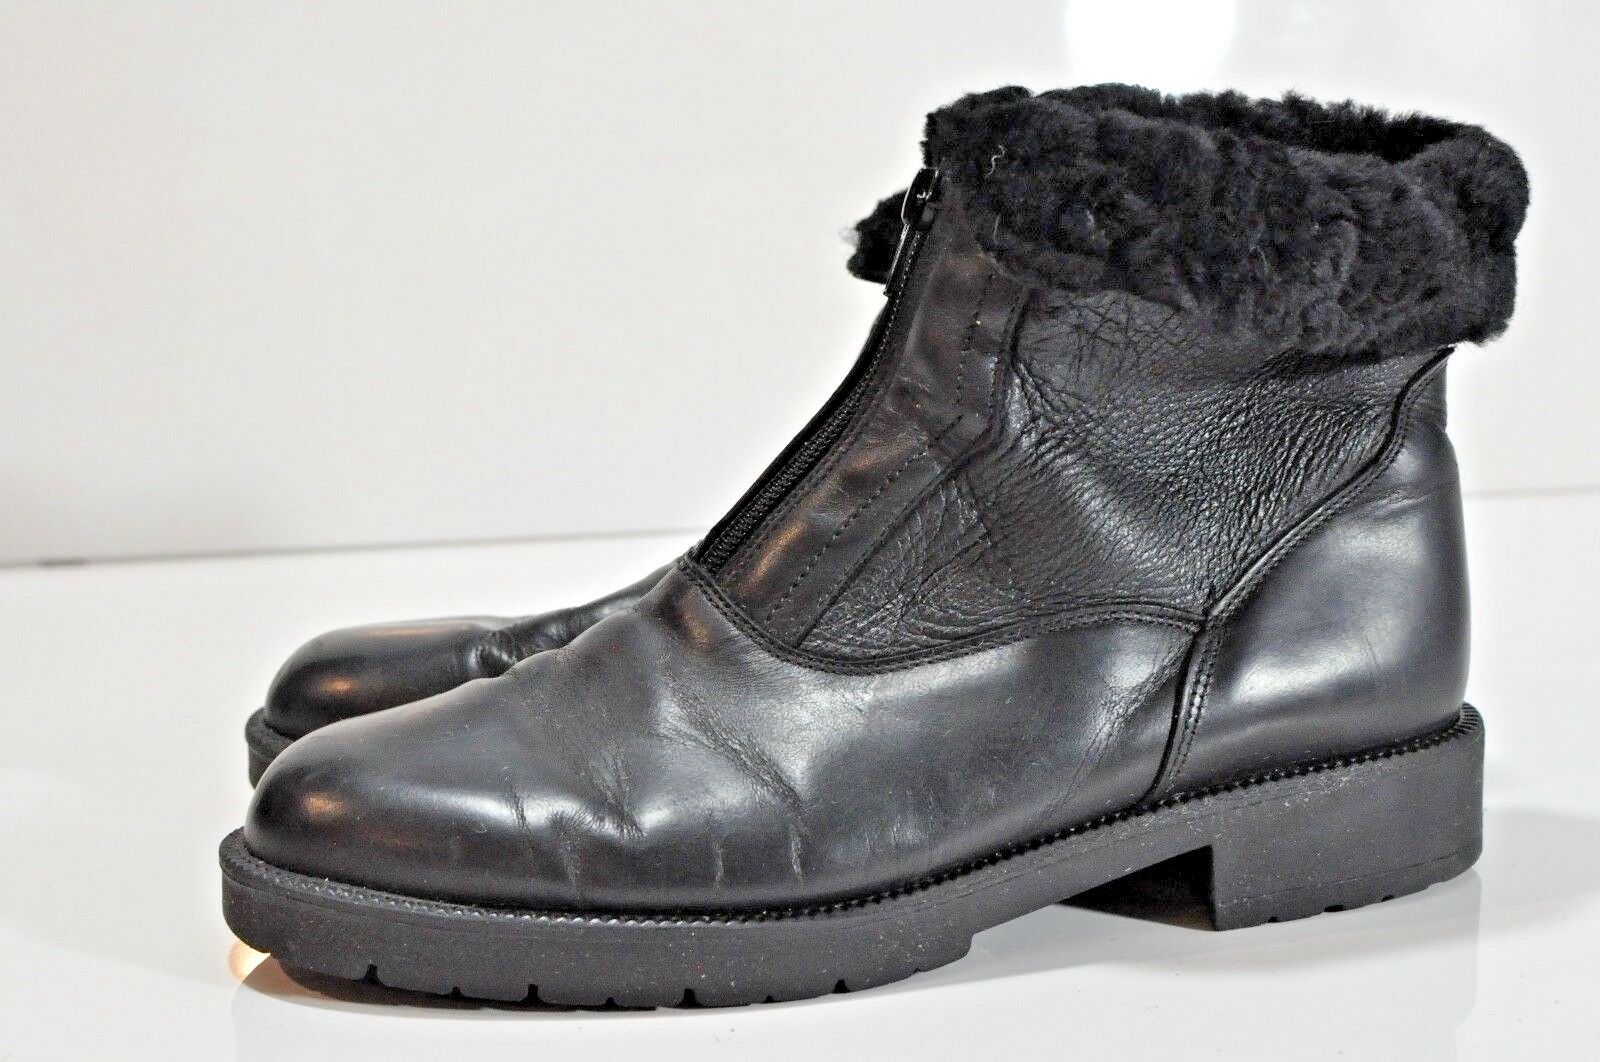 Vintage Santana Aquatherm Womens leather boots size 9 made in Canada